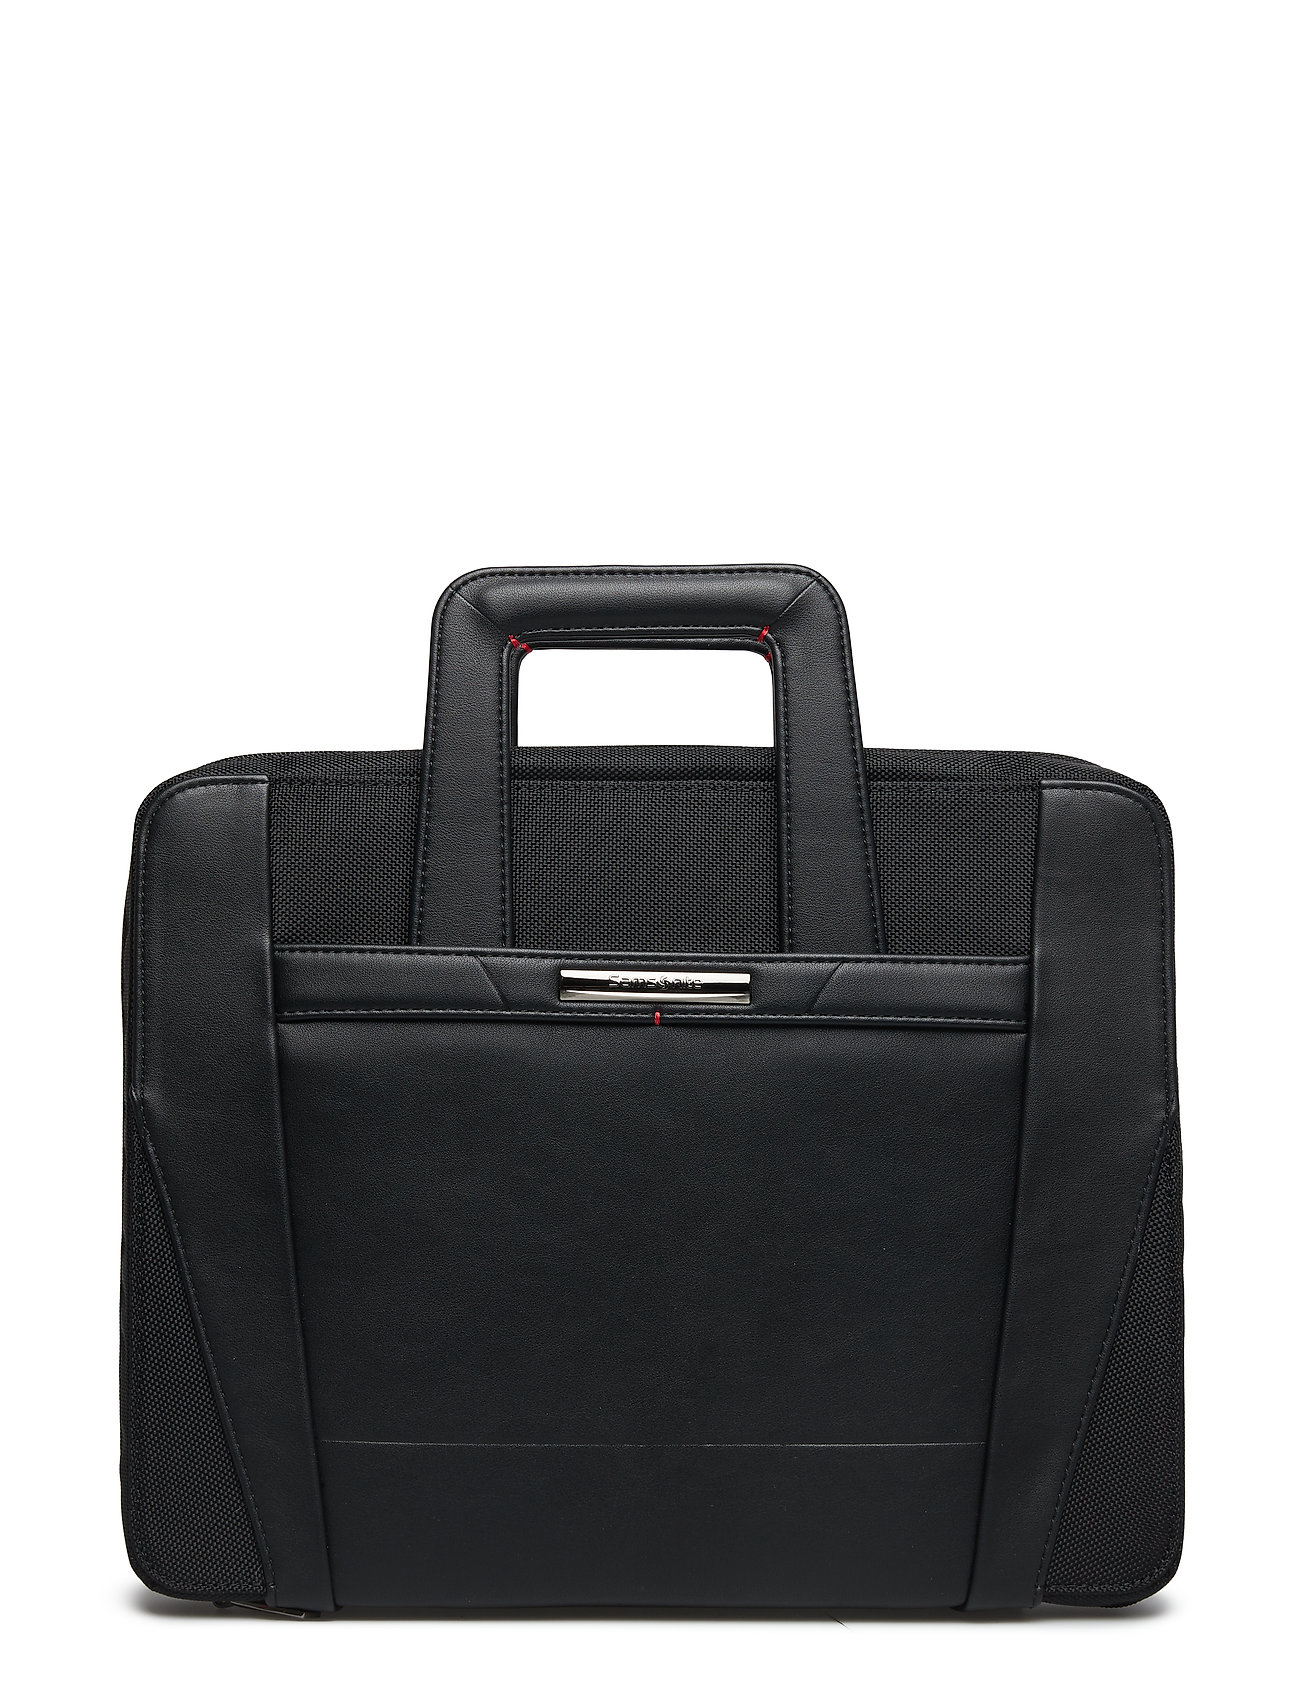 Samsonite Stationay Pro DLX Zip Folder A4